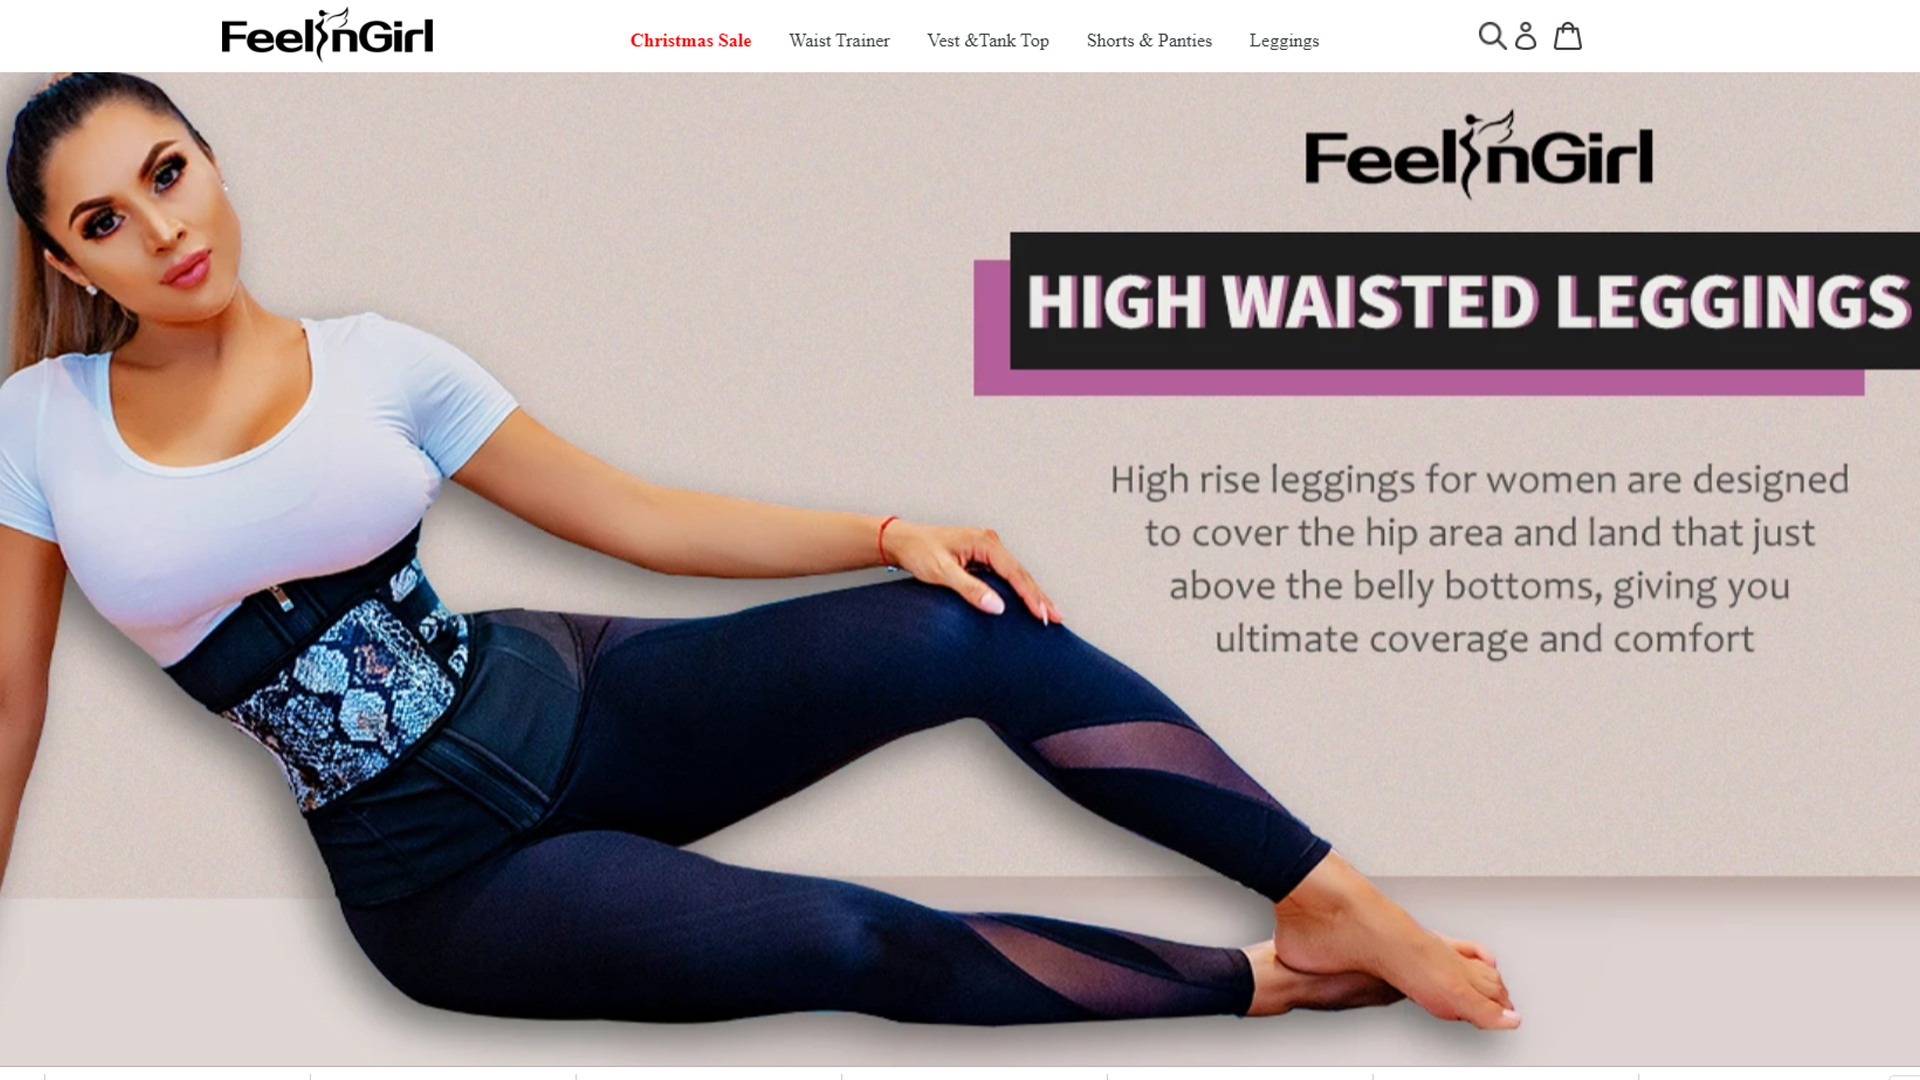 [Sponsored Post] Feelingirls Body Shapers & More